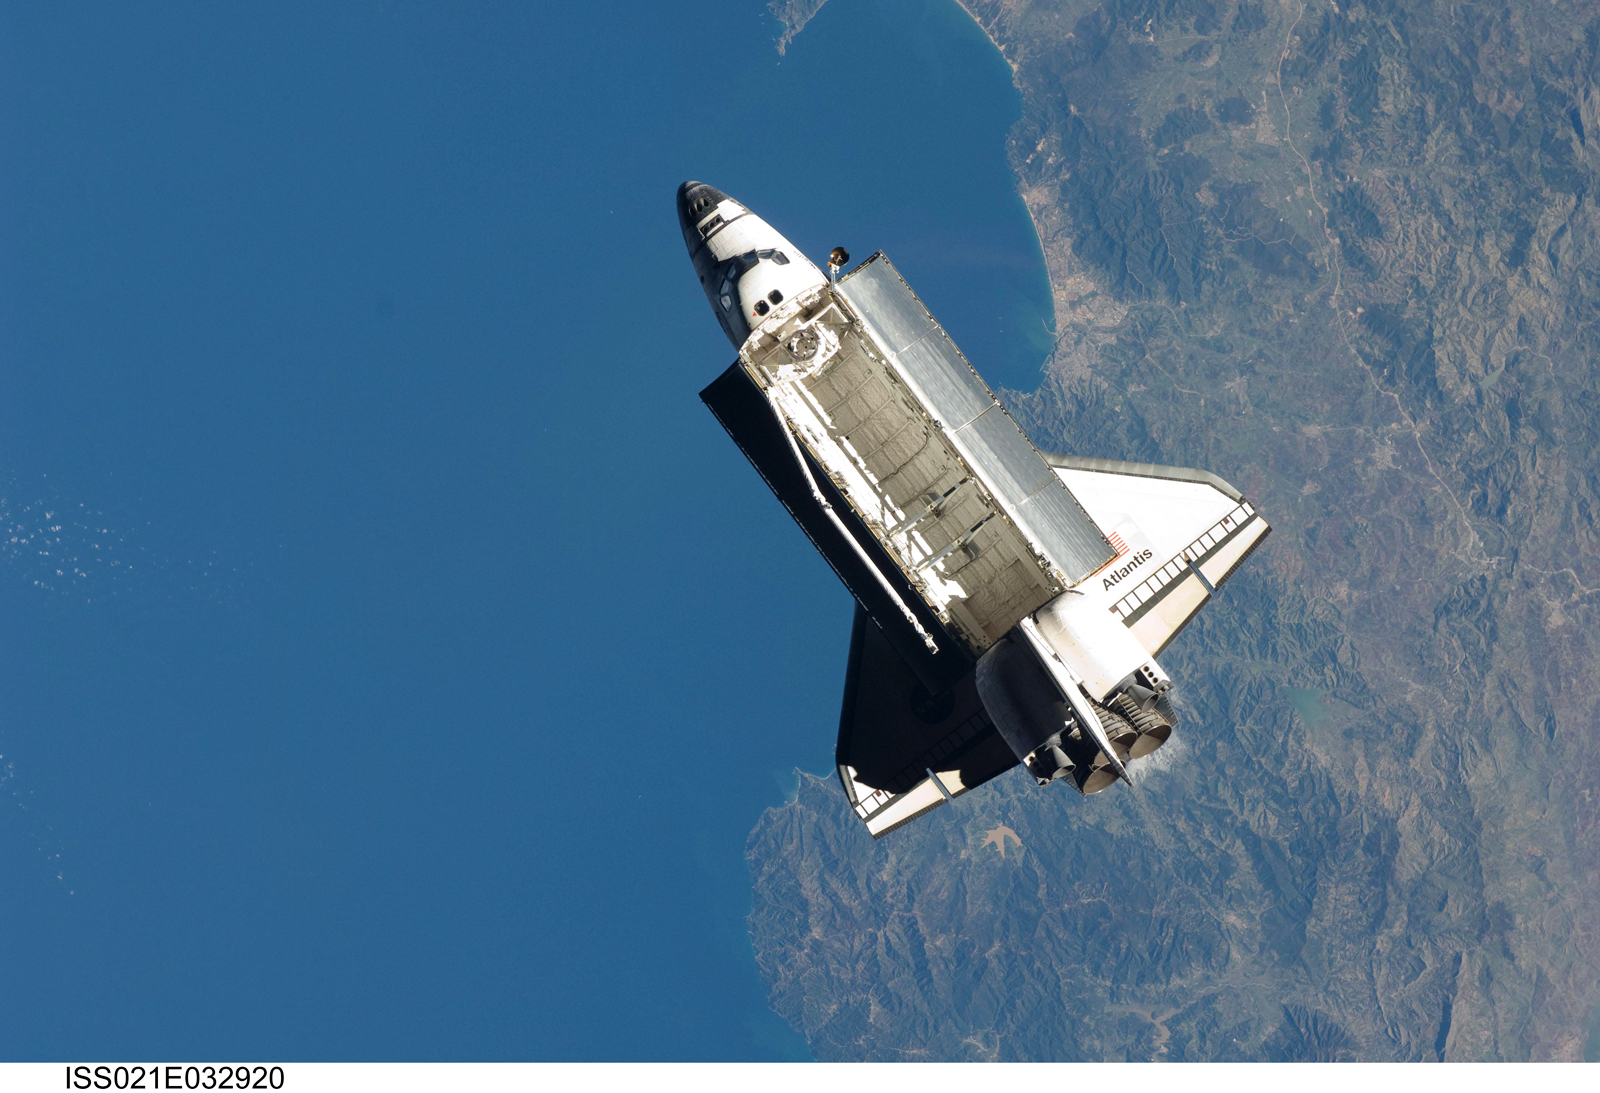 hd space shuttle in space - photo #4